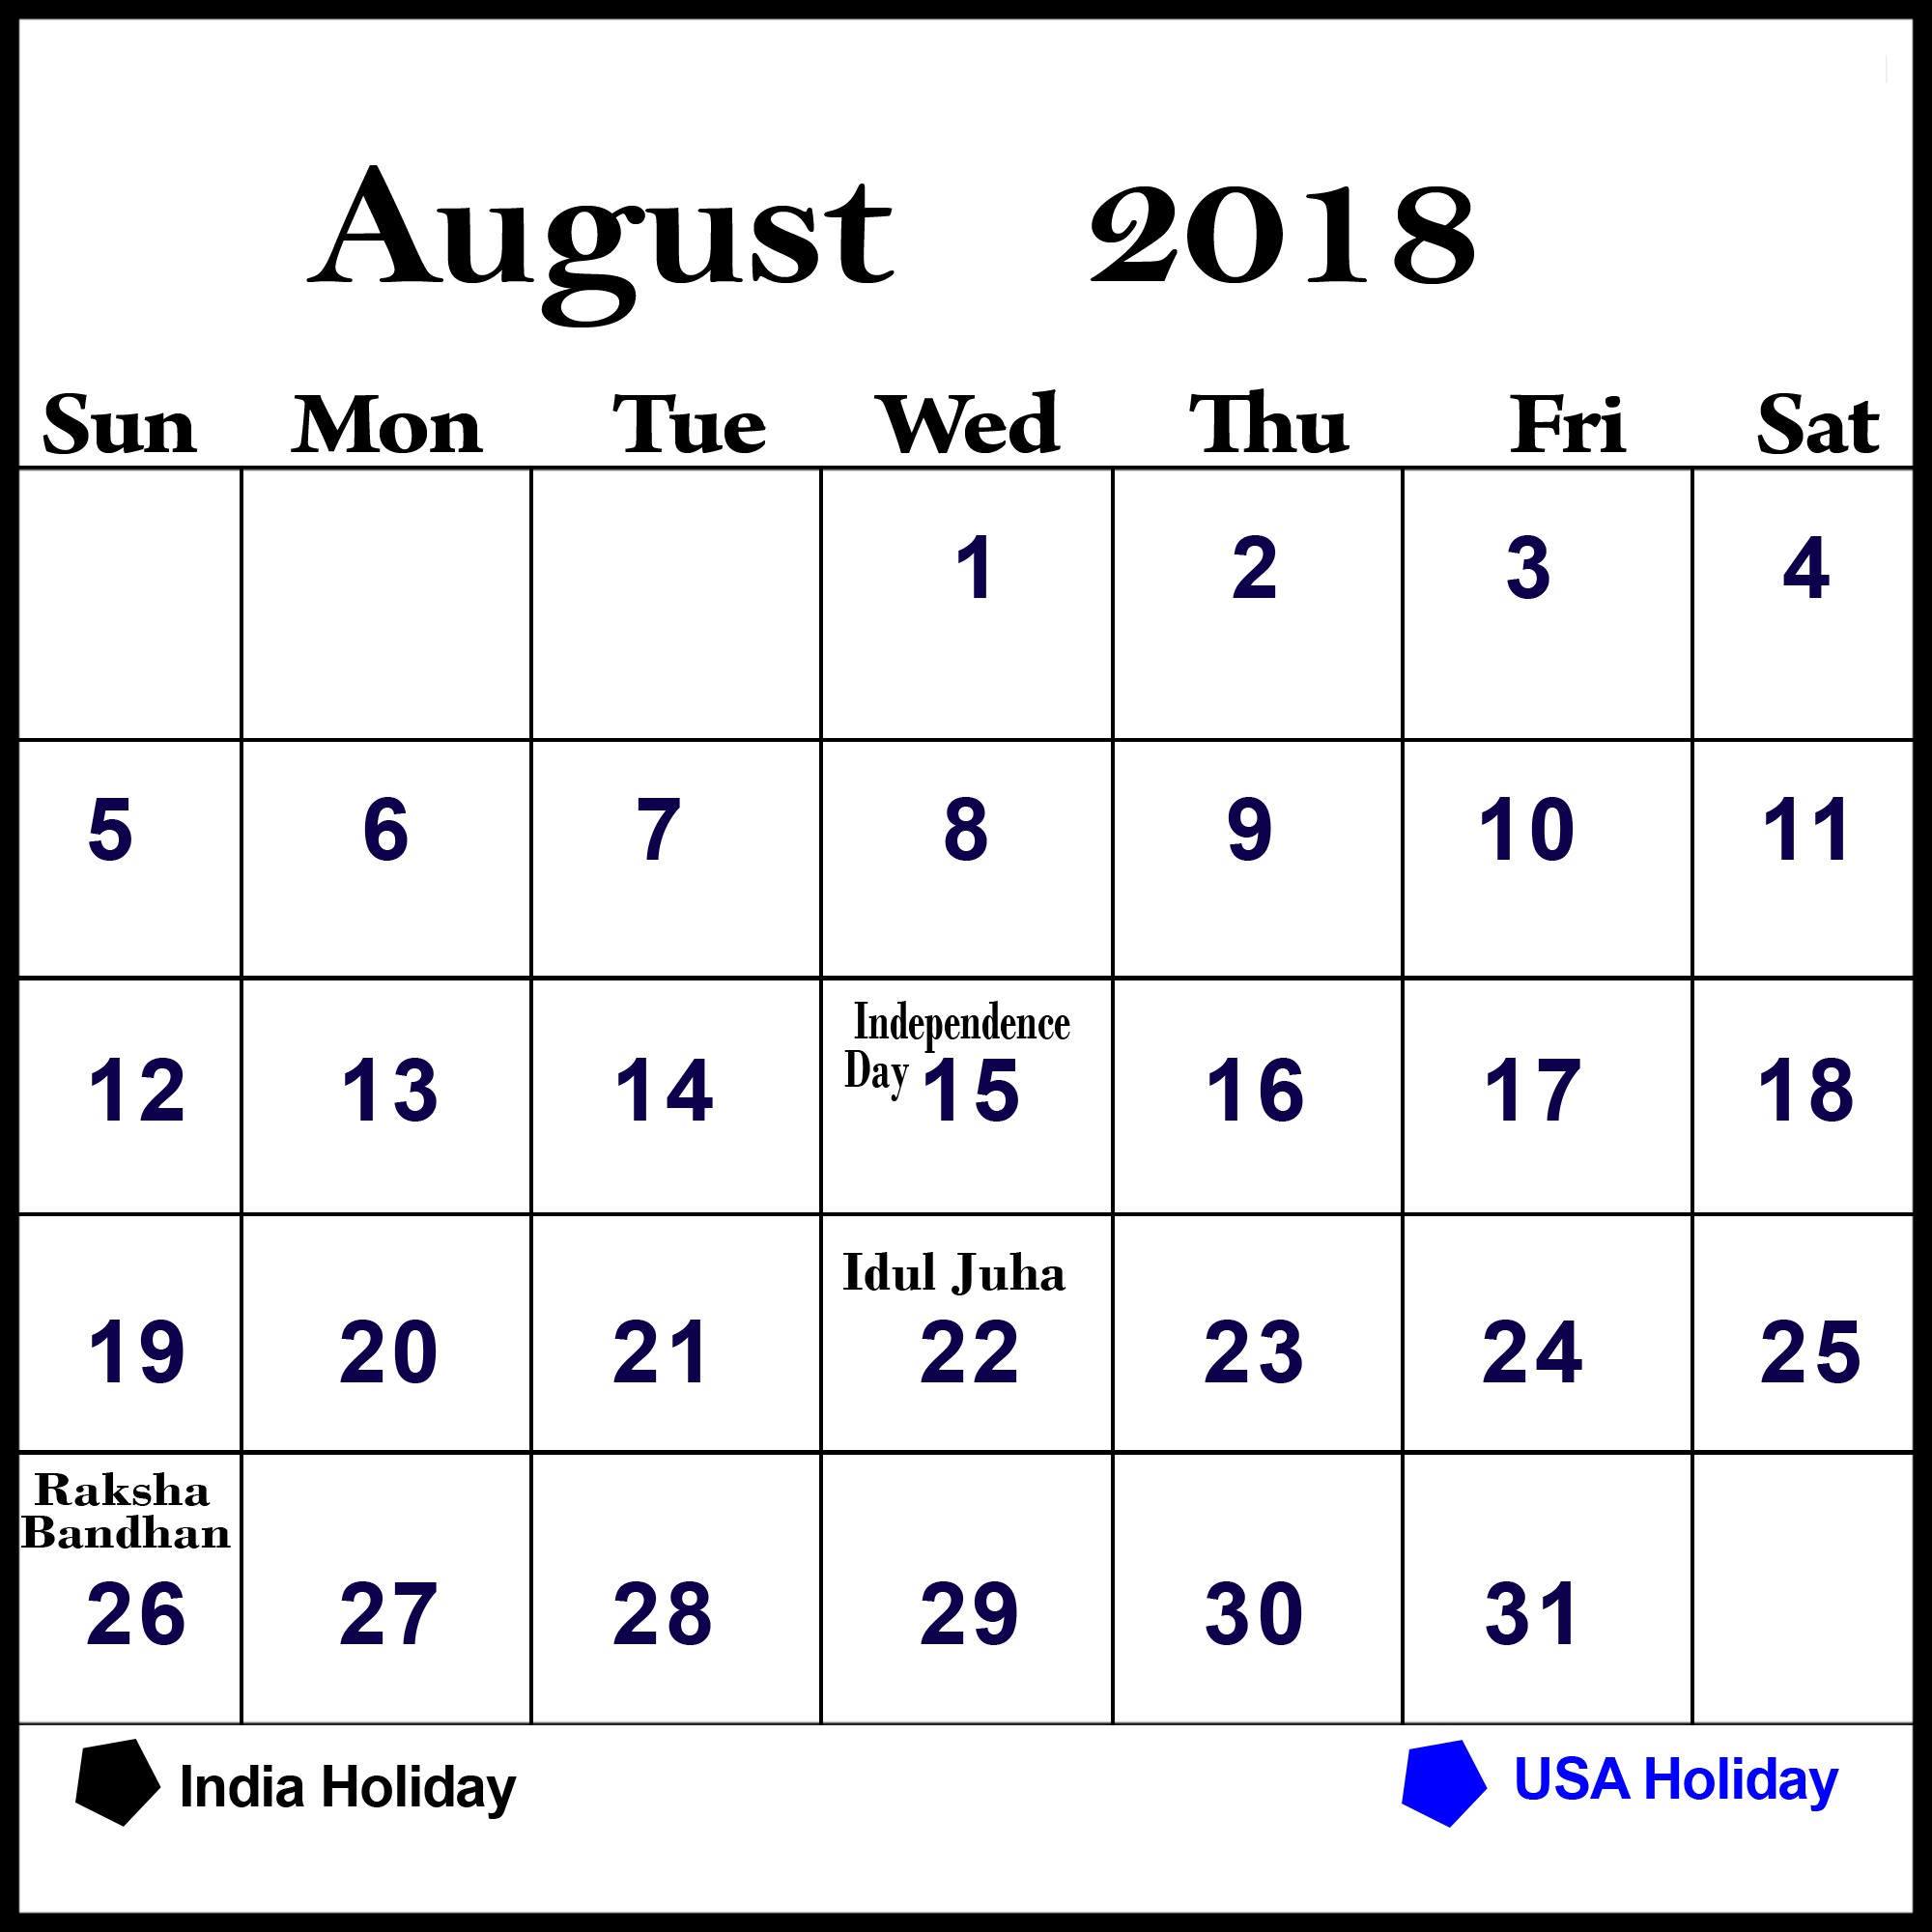 Online 2018 August Calendar With Holidays